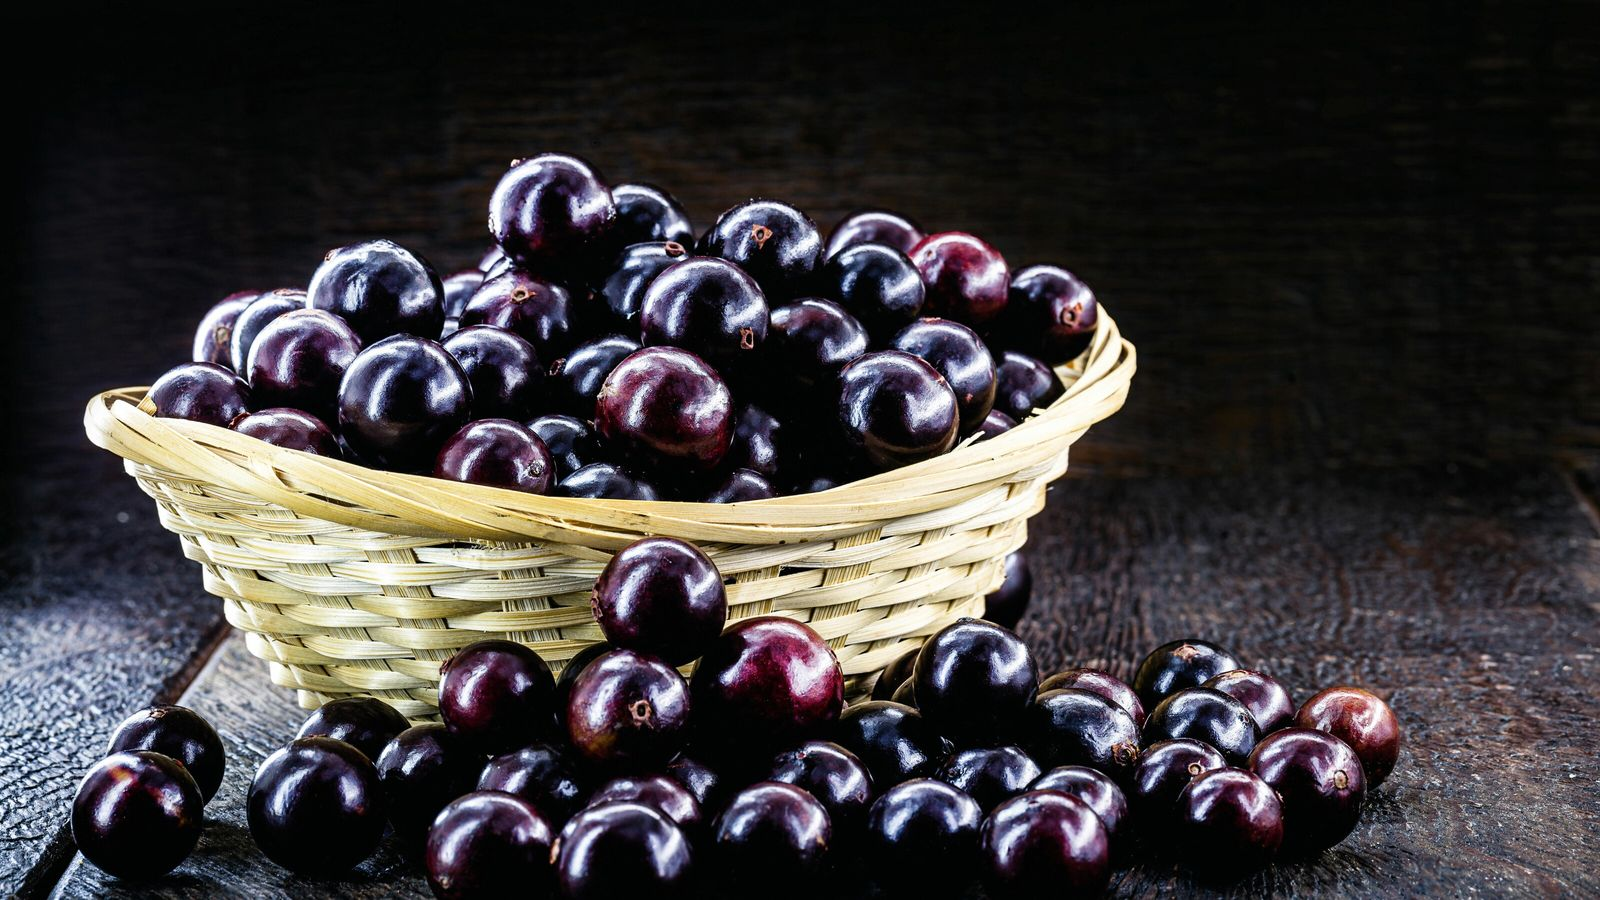 Jabuticaba berries are native to three states — Minas Gerais, Goiás and São Paolo — and in season ...